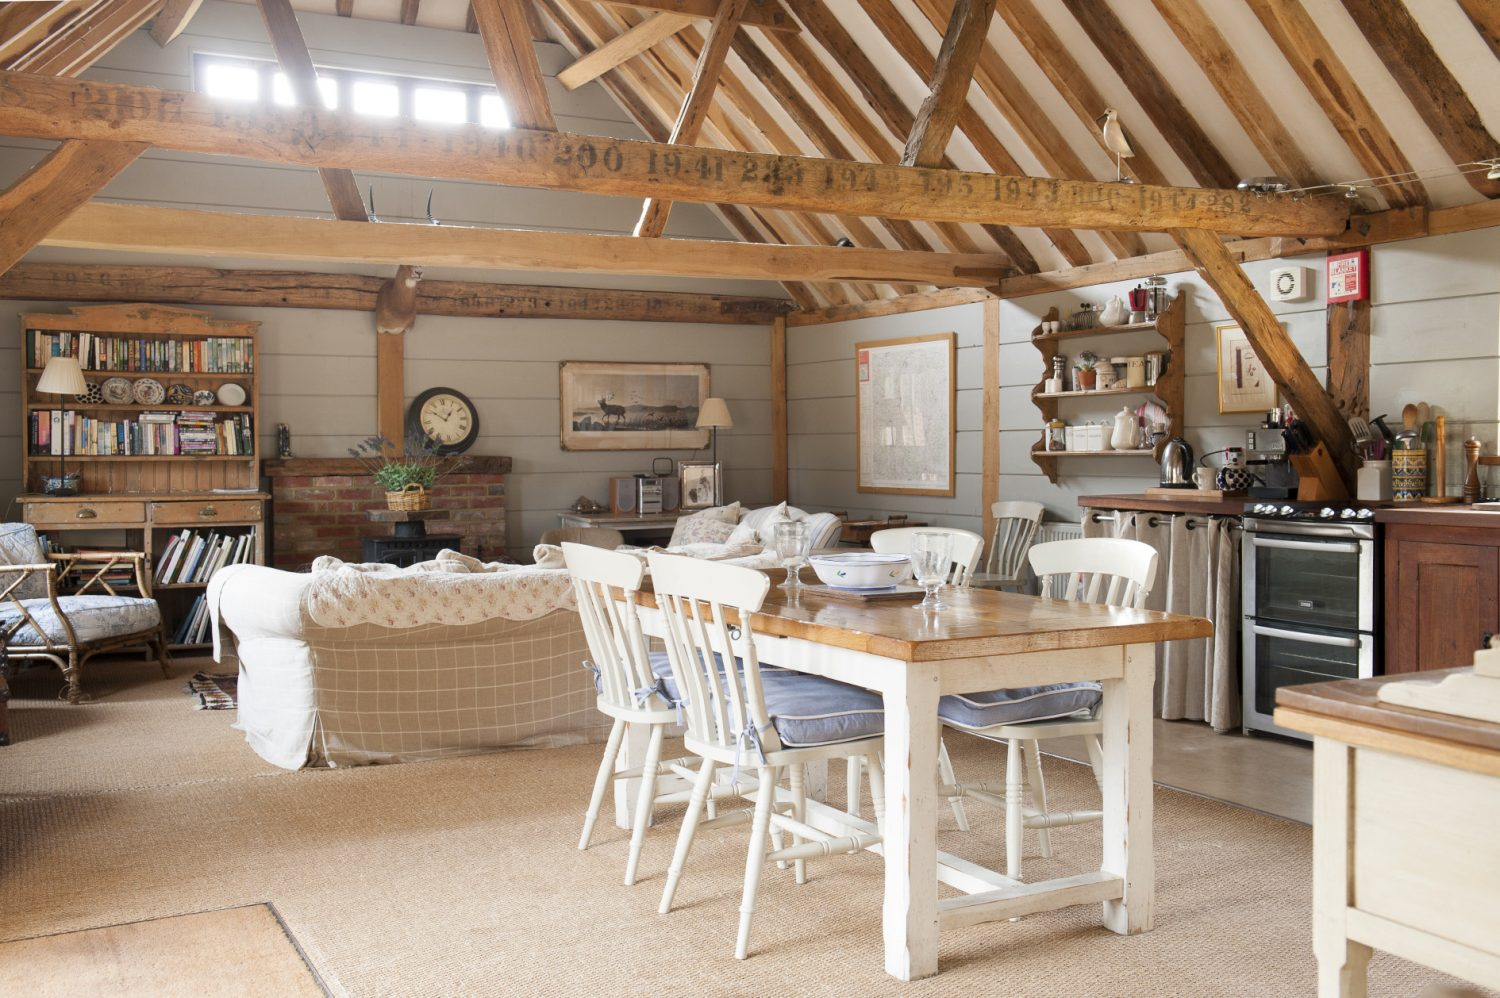 The Wylies' holiday let is reached by an outside staircase. Once inside the oast you're met with the most gorgeous open-plan kitchen and living room, lined with pale-blue painted boards and honey-coloured beams. Stencilled black numbers on the beams are a reminder of the oast's former purpose